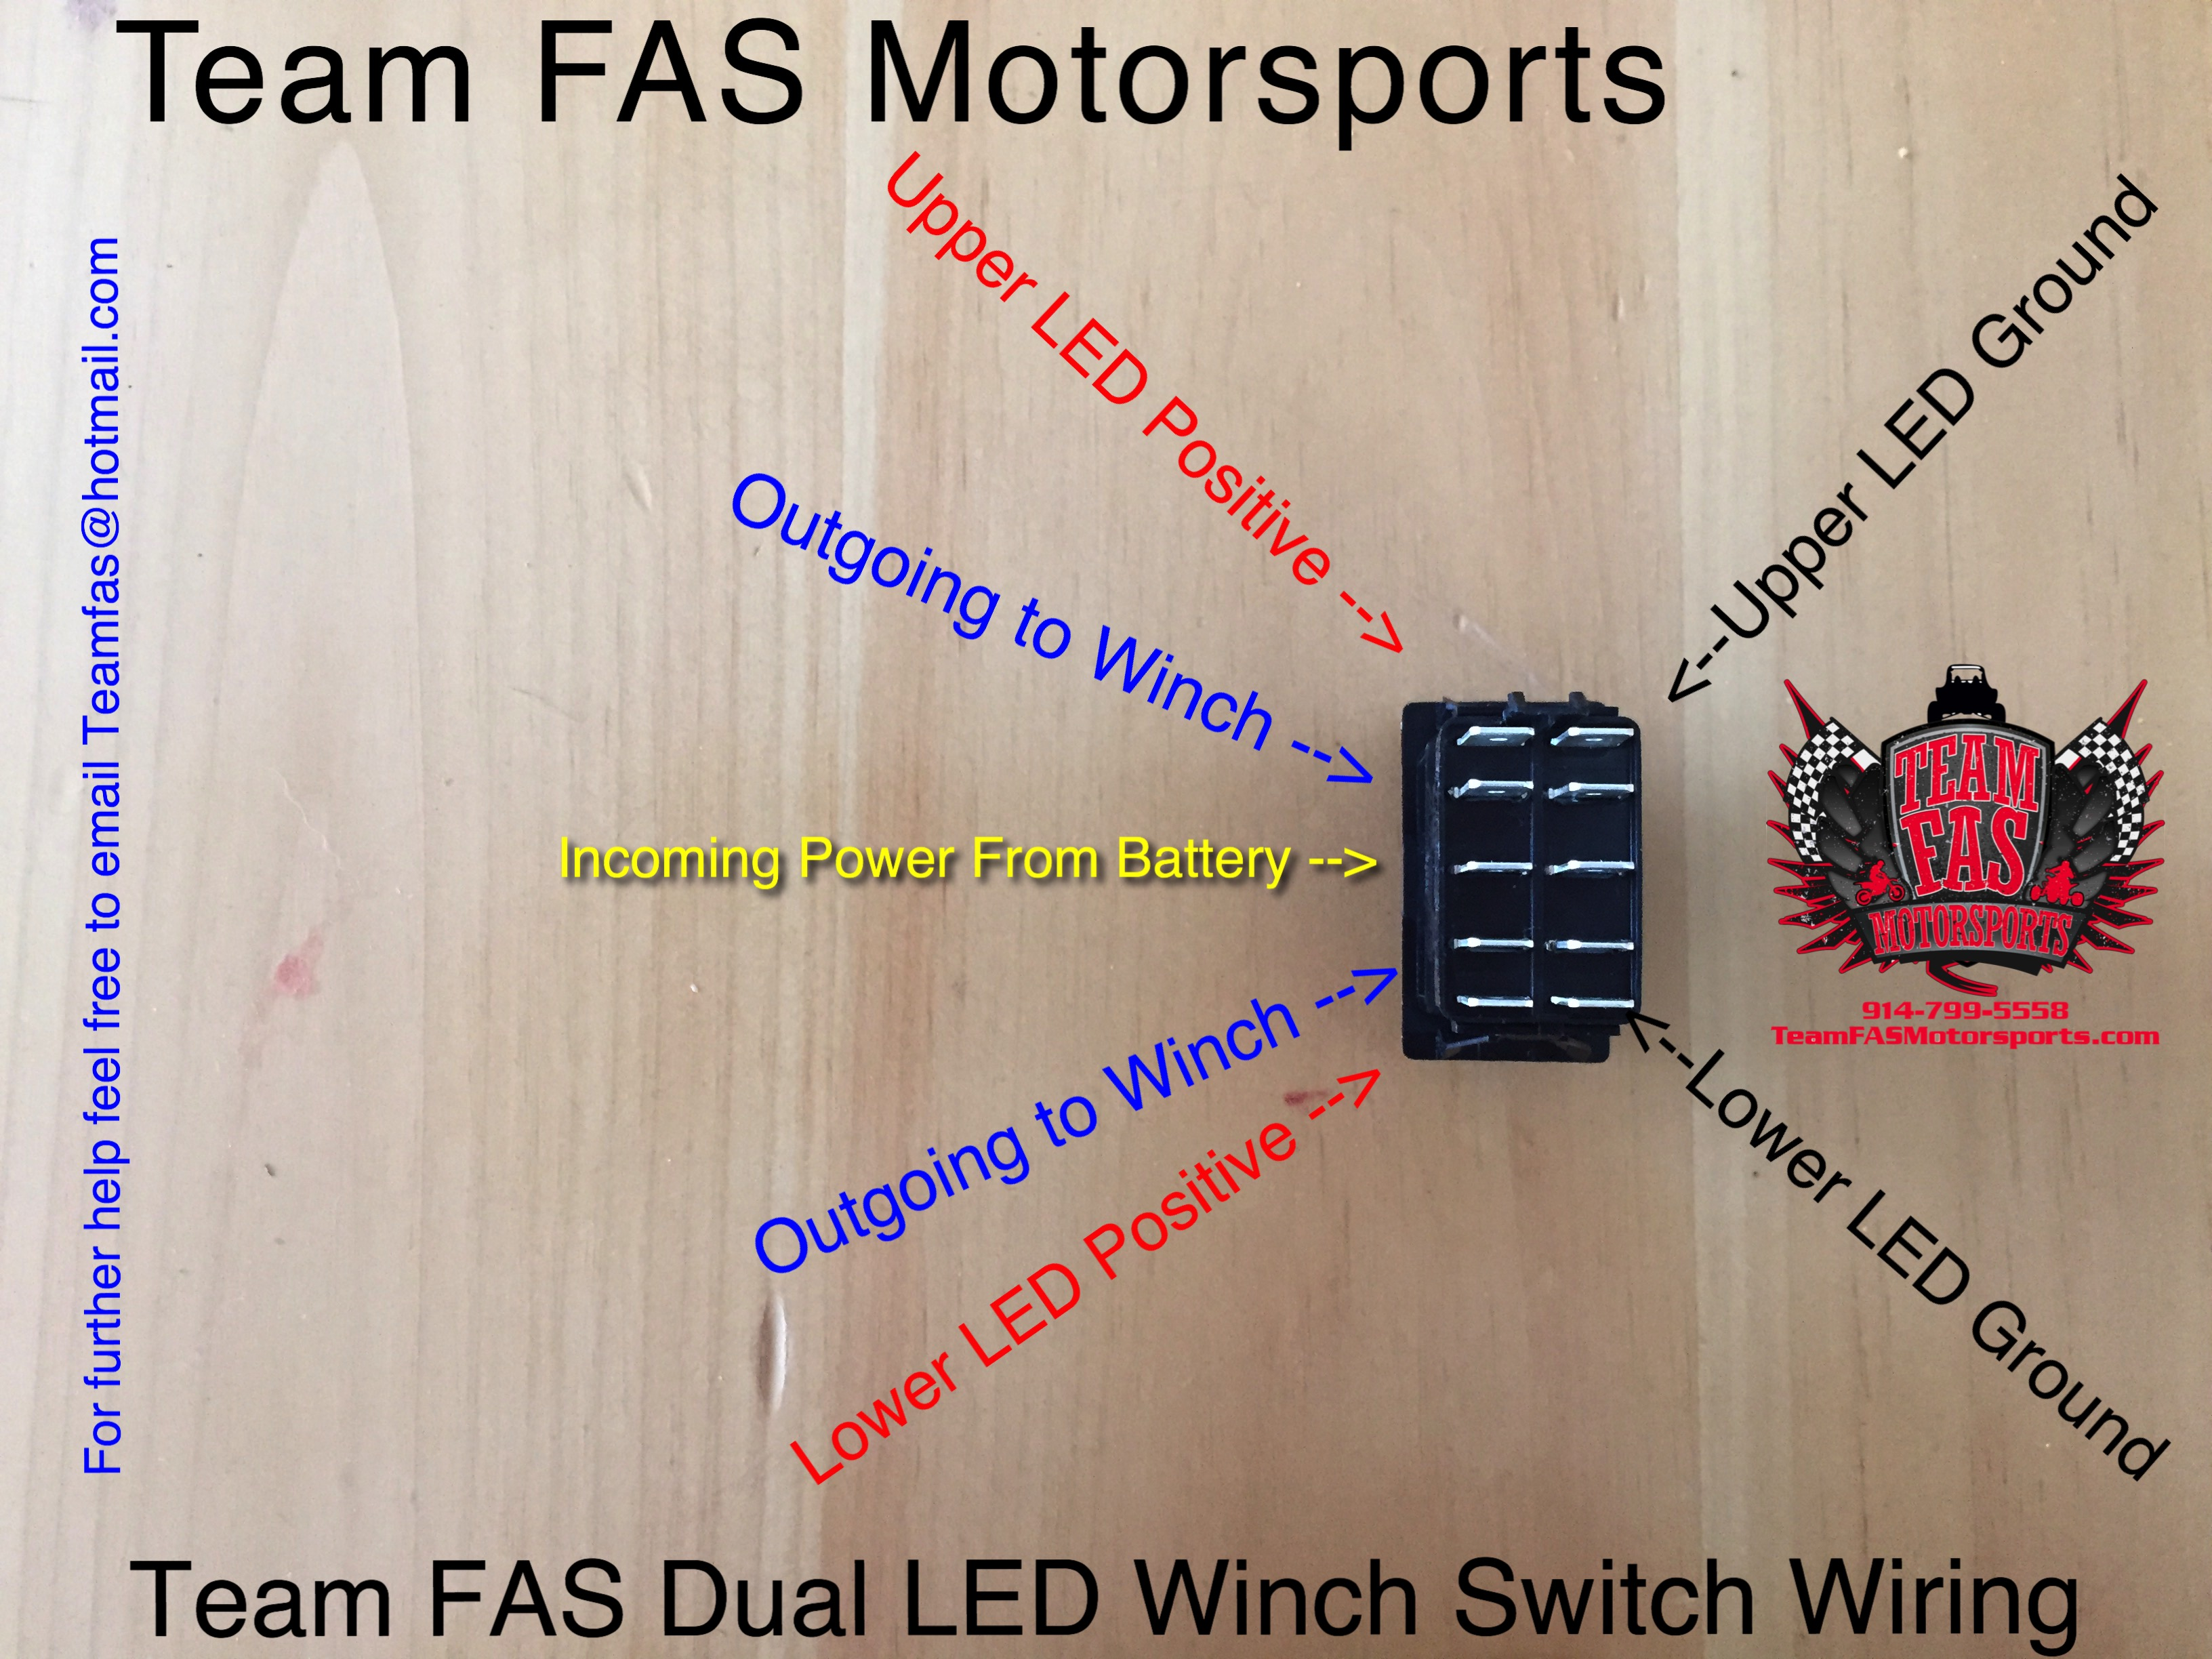 Wiring Diagram For Aftermarket Rzr Electrical Diagrams 2012 Polaris Team Fas Motorsports Dual Led On Off Switch